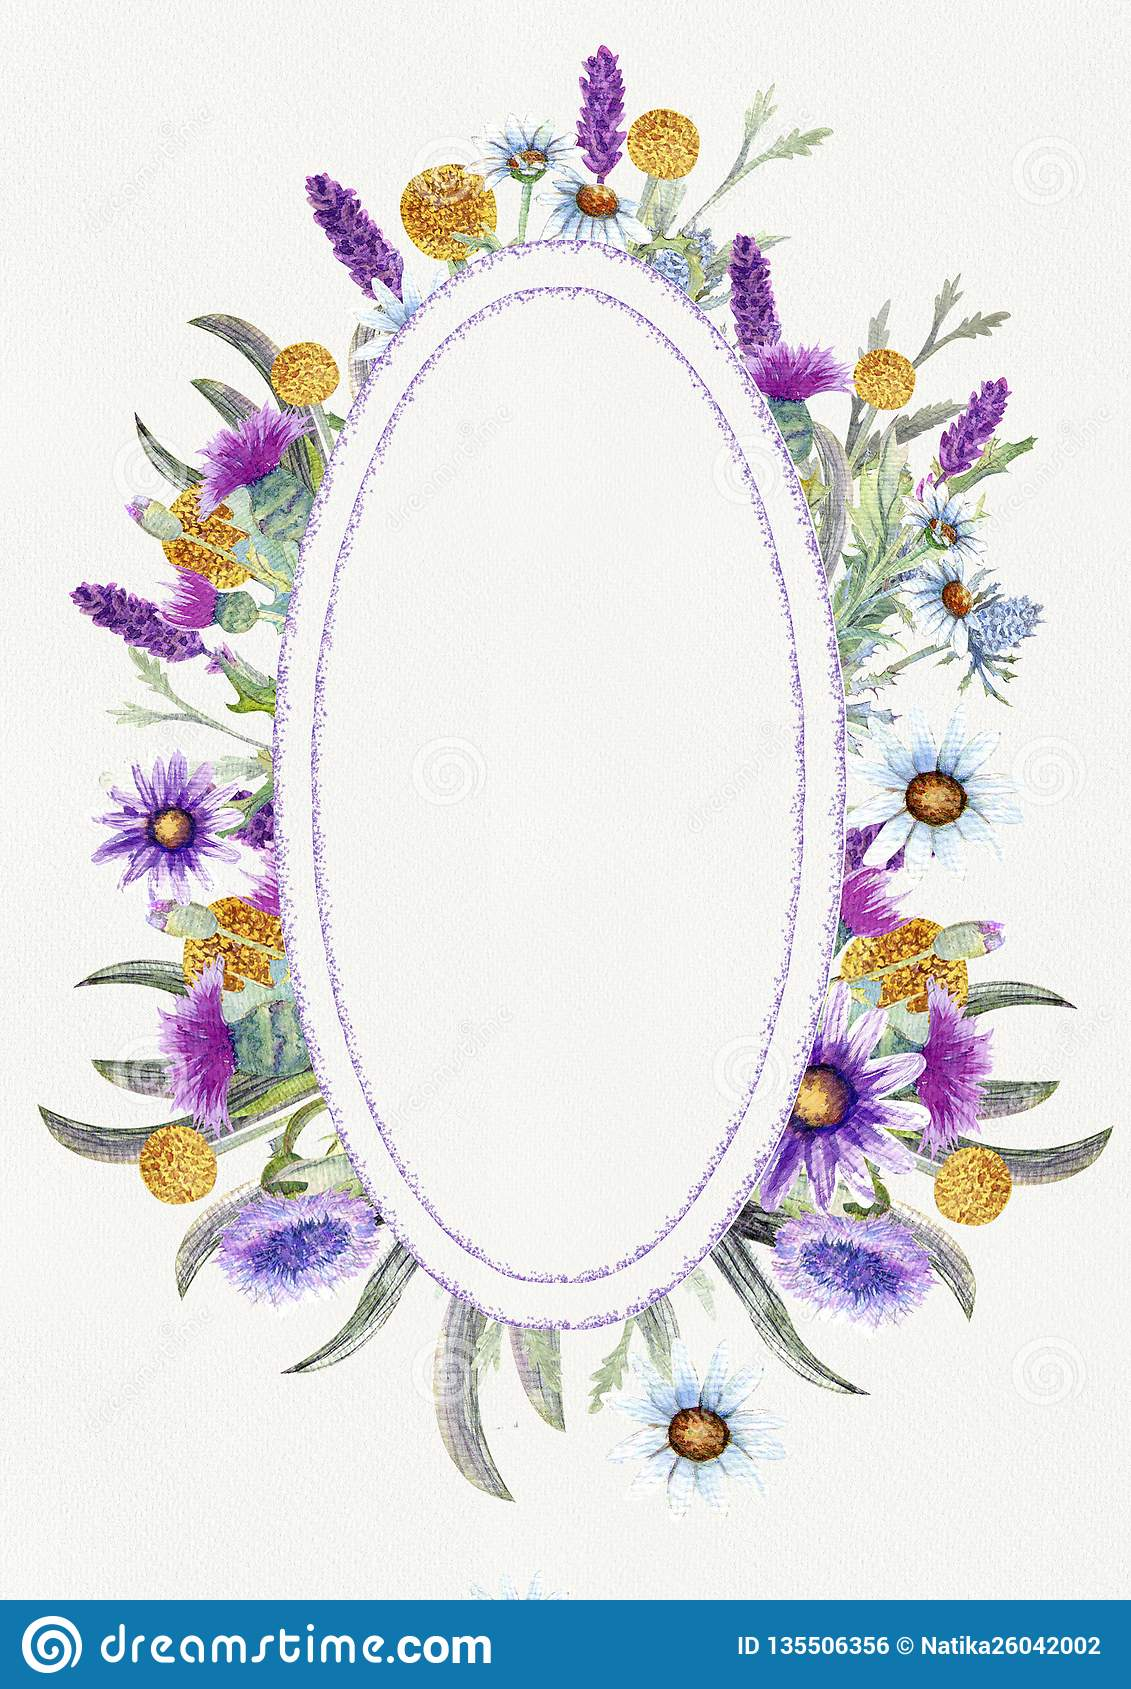 Wedding vertical frame of wild flowers. Watercolor. Flower arrangement. Greeting card template design. Invitation